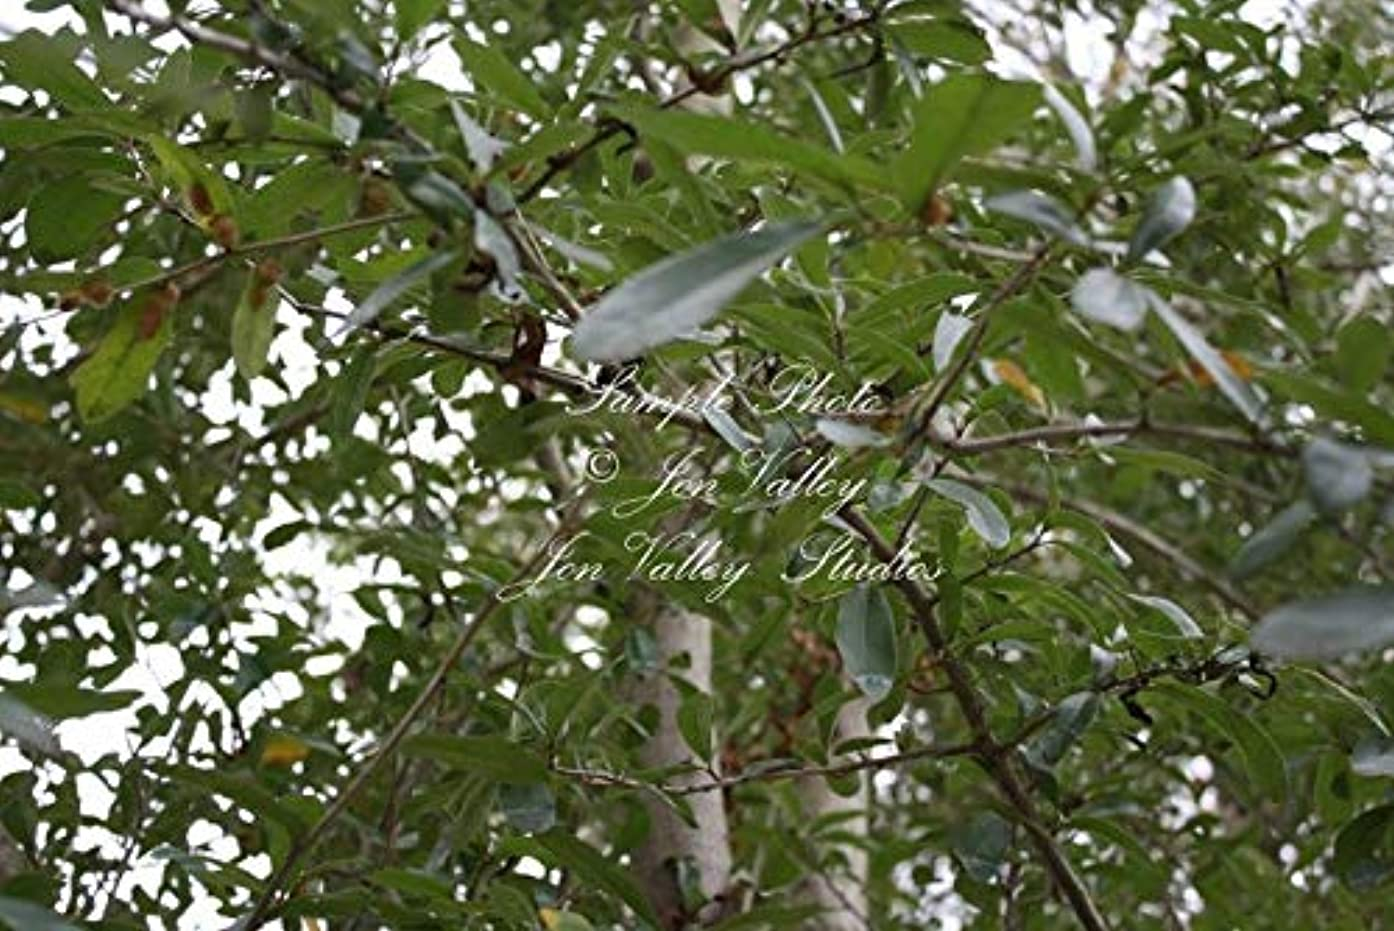 10 Live Oak Tree Seeds Quercus virginiana -Bonsai -Standard- Aged Look -Shade Tree Zones 8-11 Or Grow Seed Sale by yunakesa